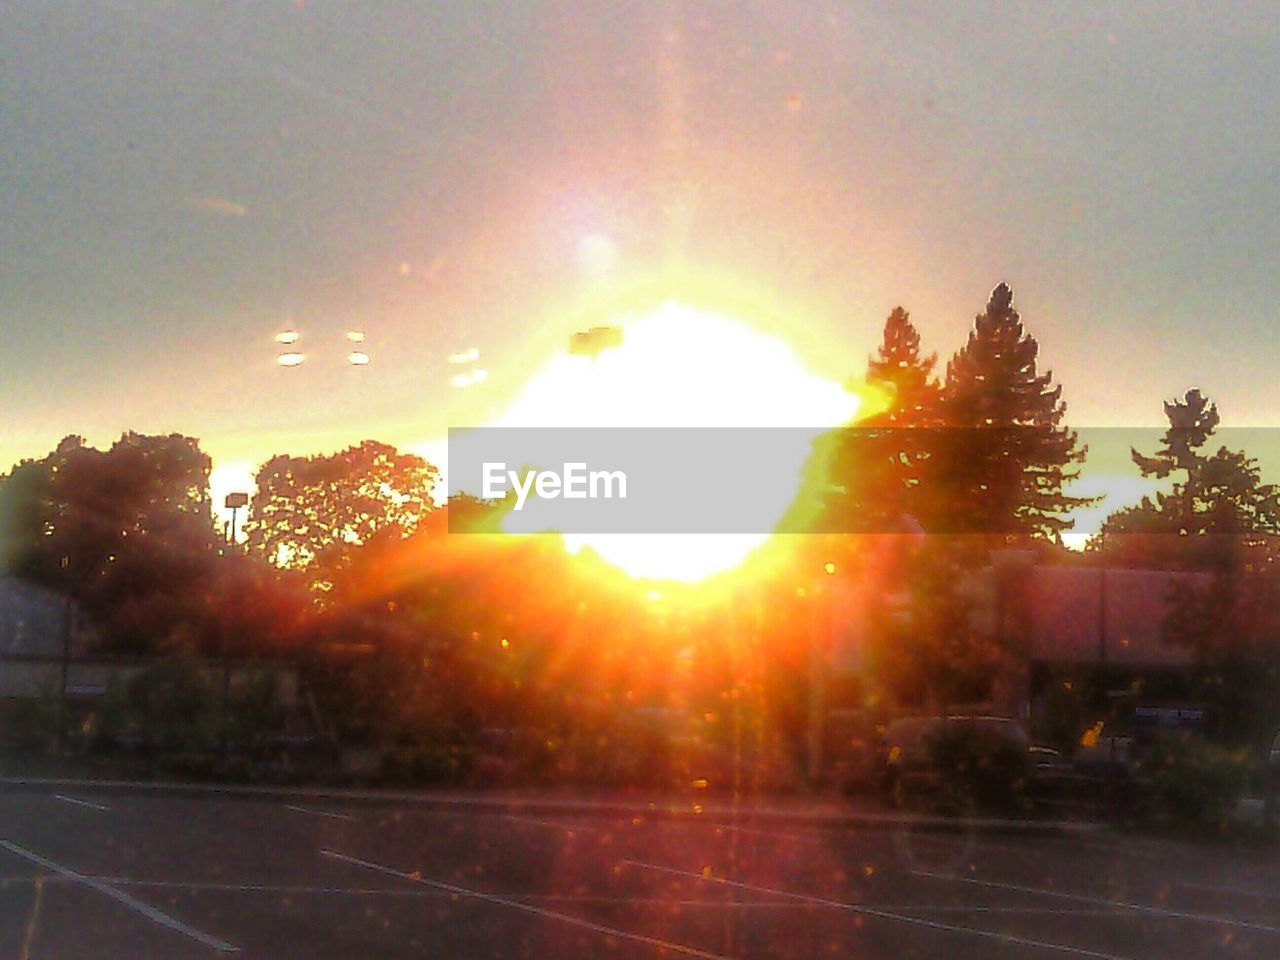 lens flare, sun, sunbeam, sunset, sunlight, tree, bright, outdoors, sky, no people, nature, silhouette, day, clear sky, beauty in nature, close-up